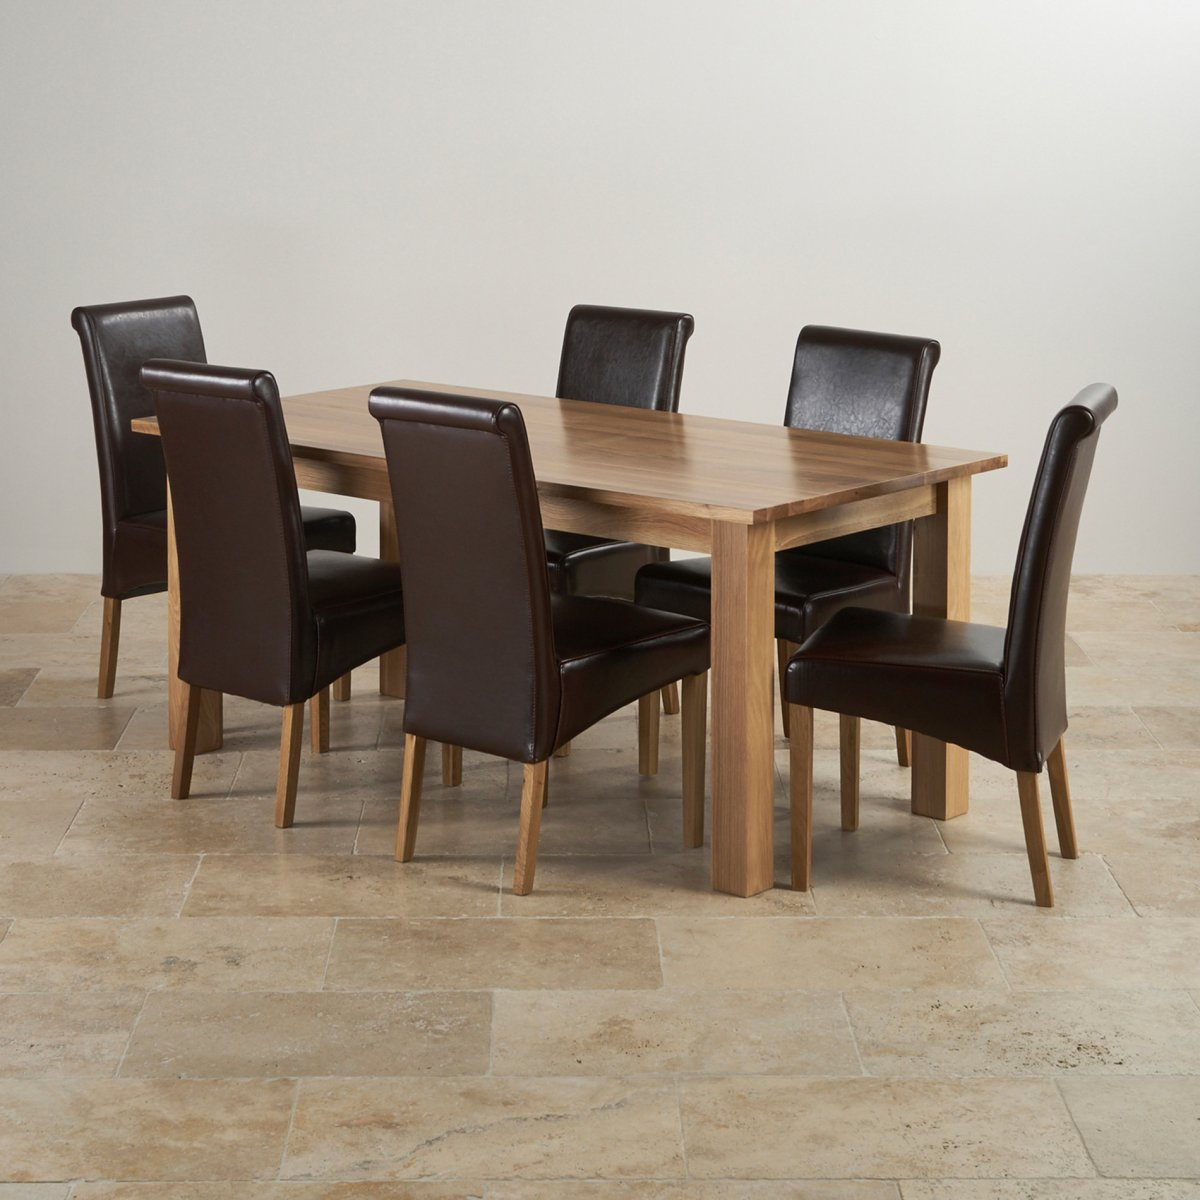 Oak Dining Room Furniture: Contemporary Dining Set In Natural Oak